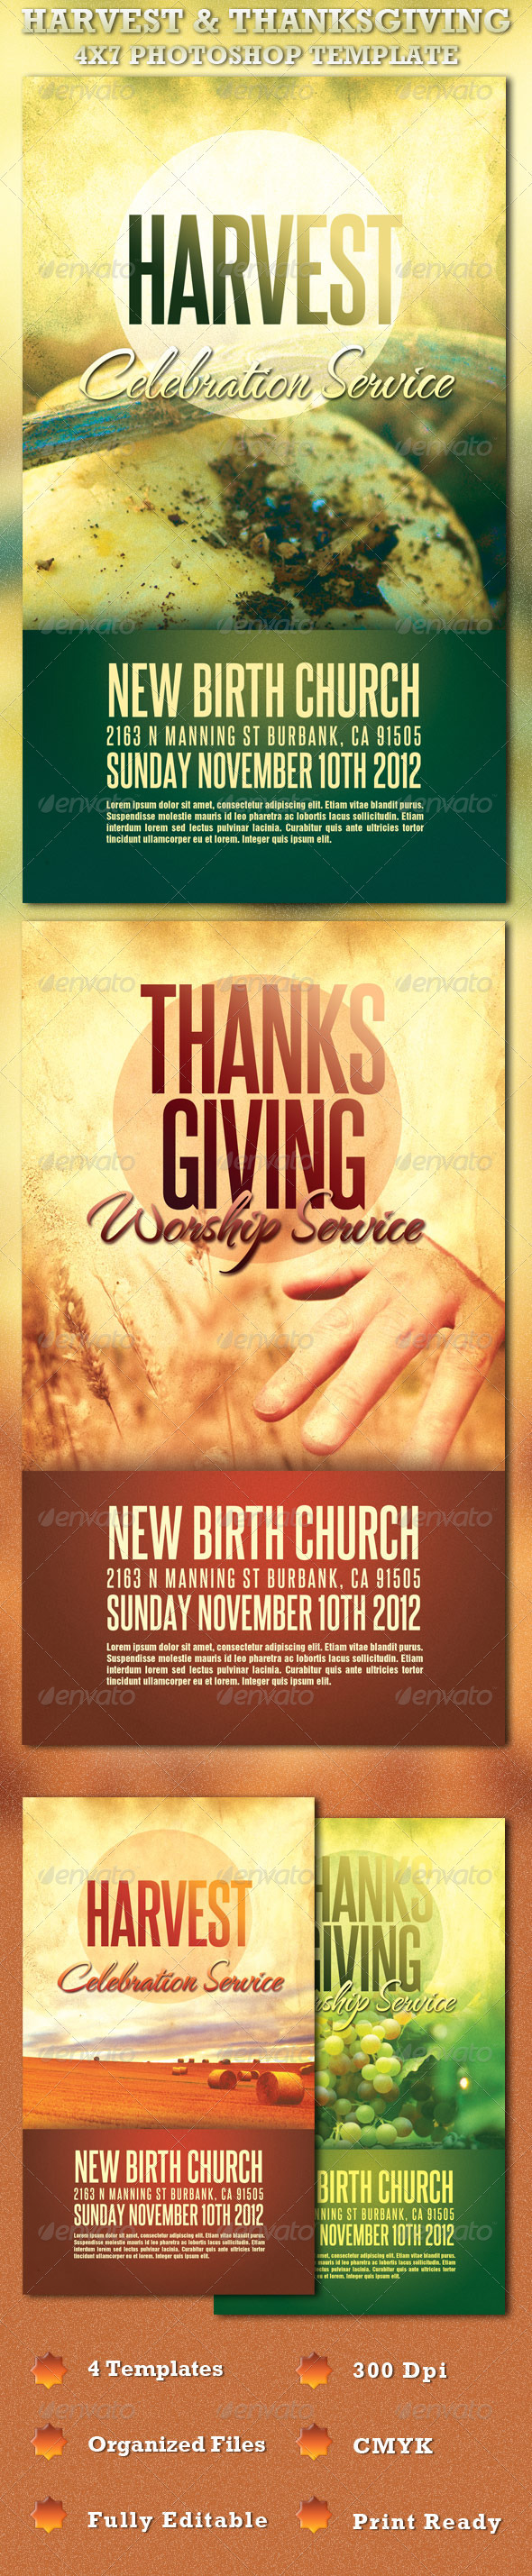 Harvest and Thanksgiving Church Flyer Template - Church Flyers